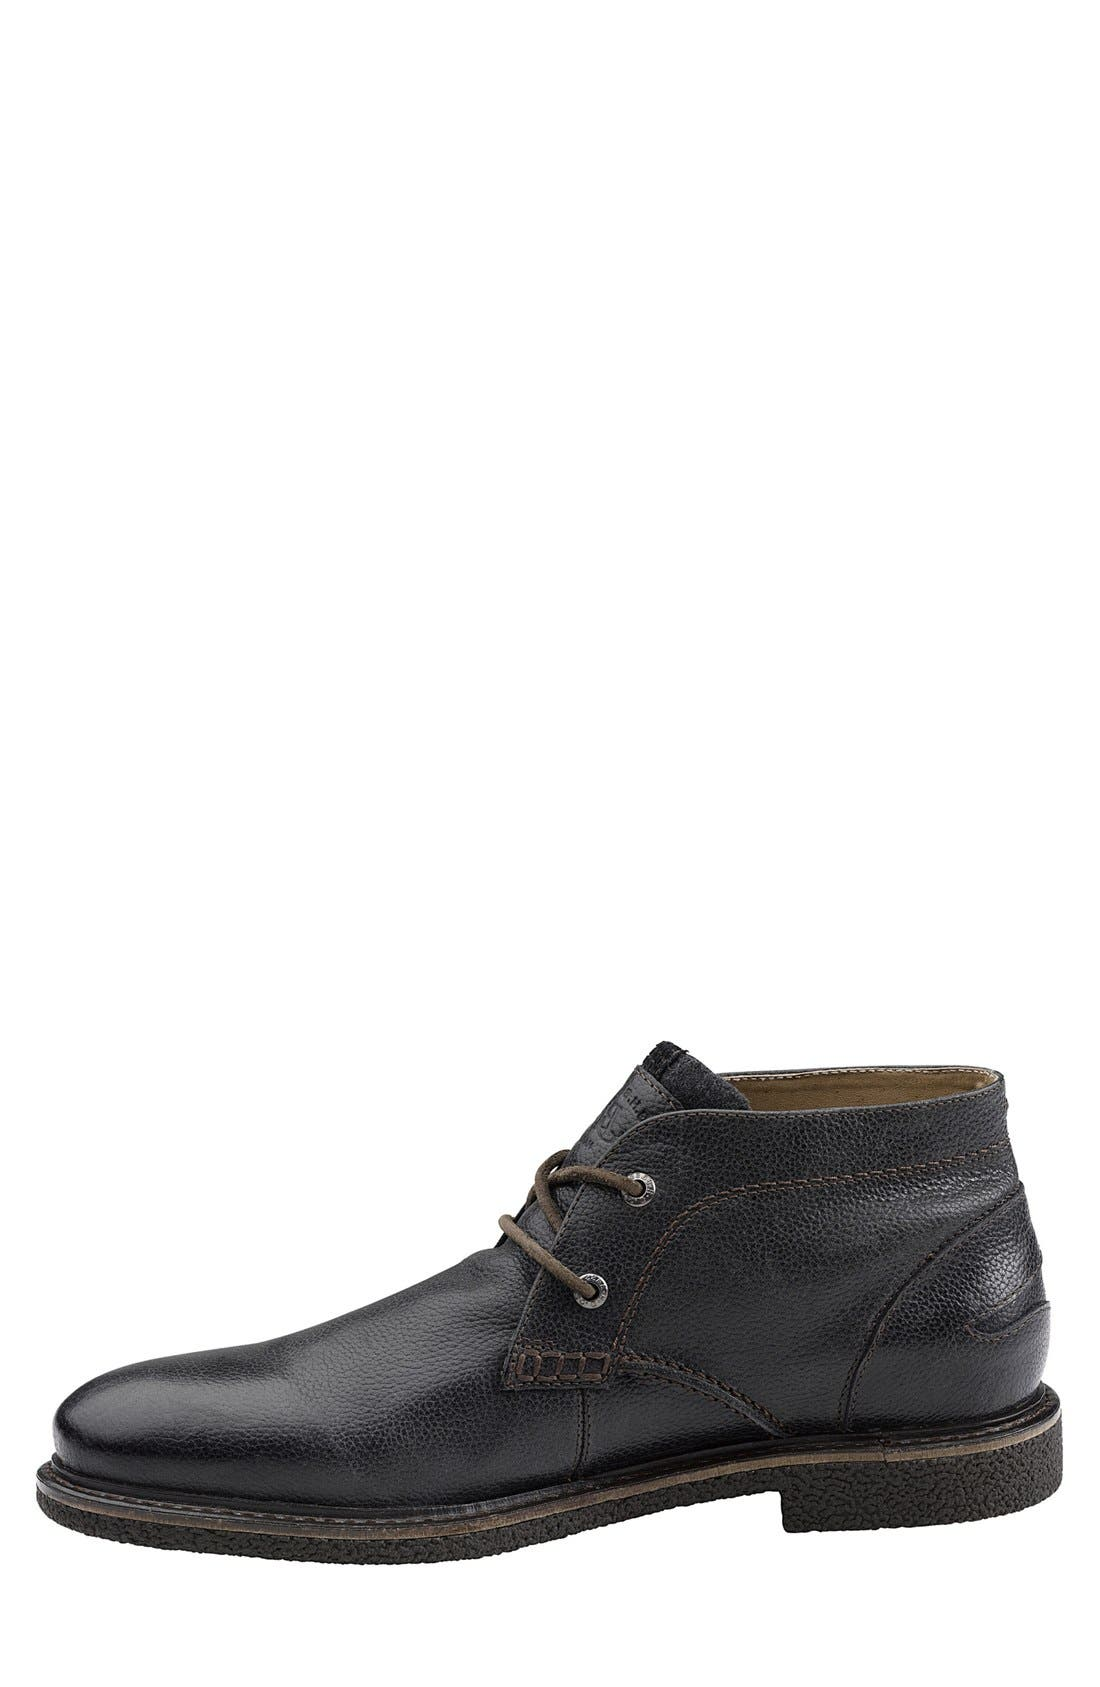 'Bennett' Chukka Boot,                             Alternate thumbnail 2, color,                             BLACK